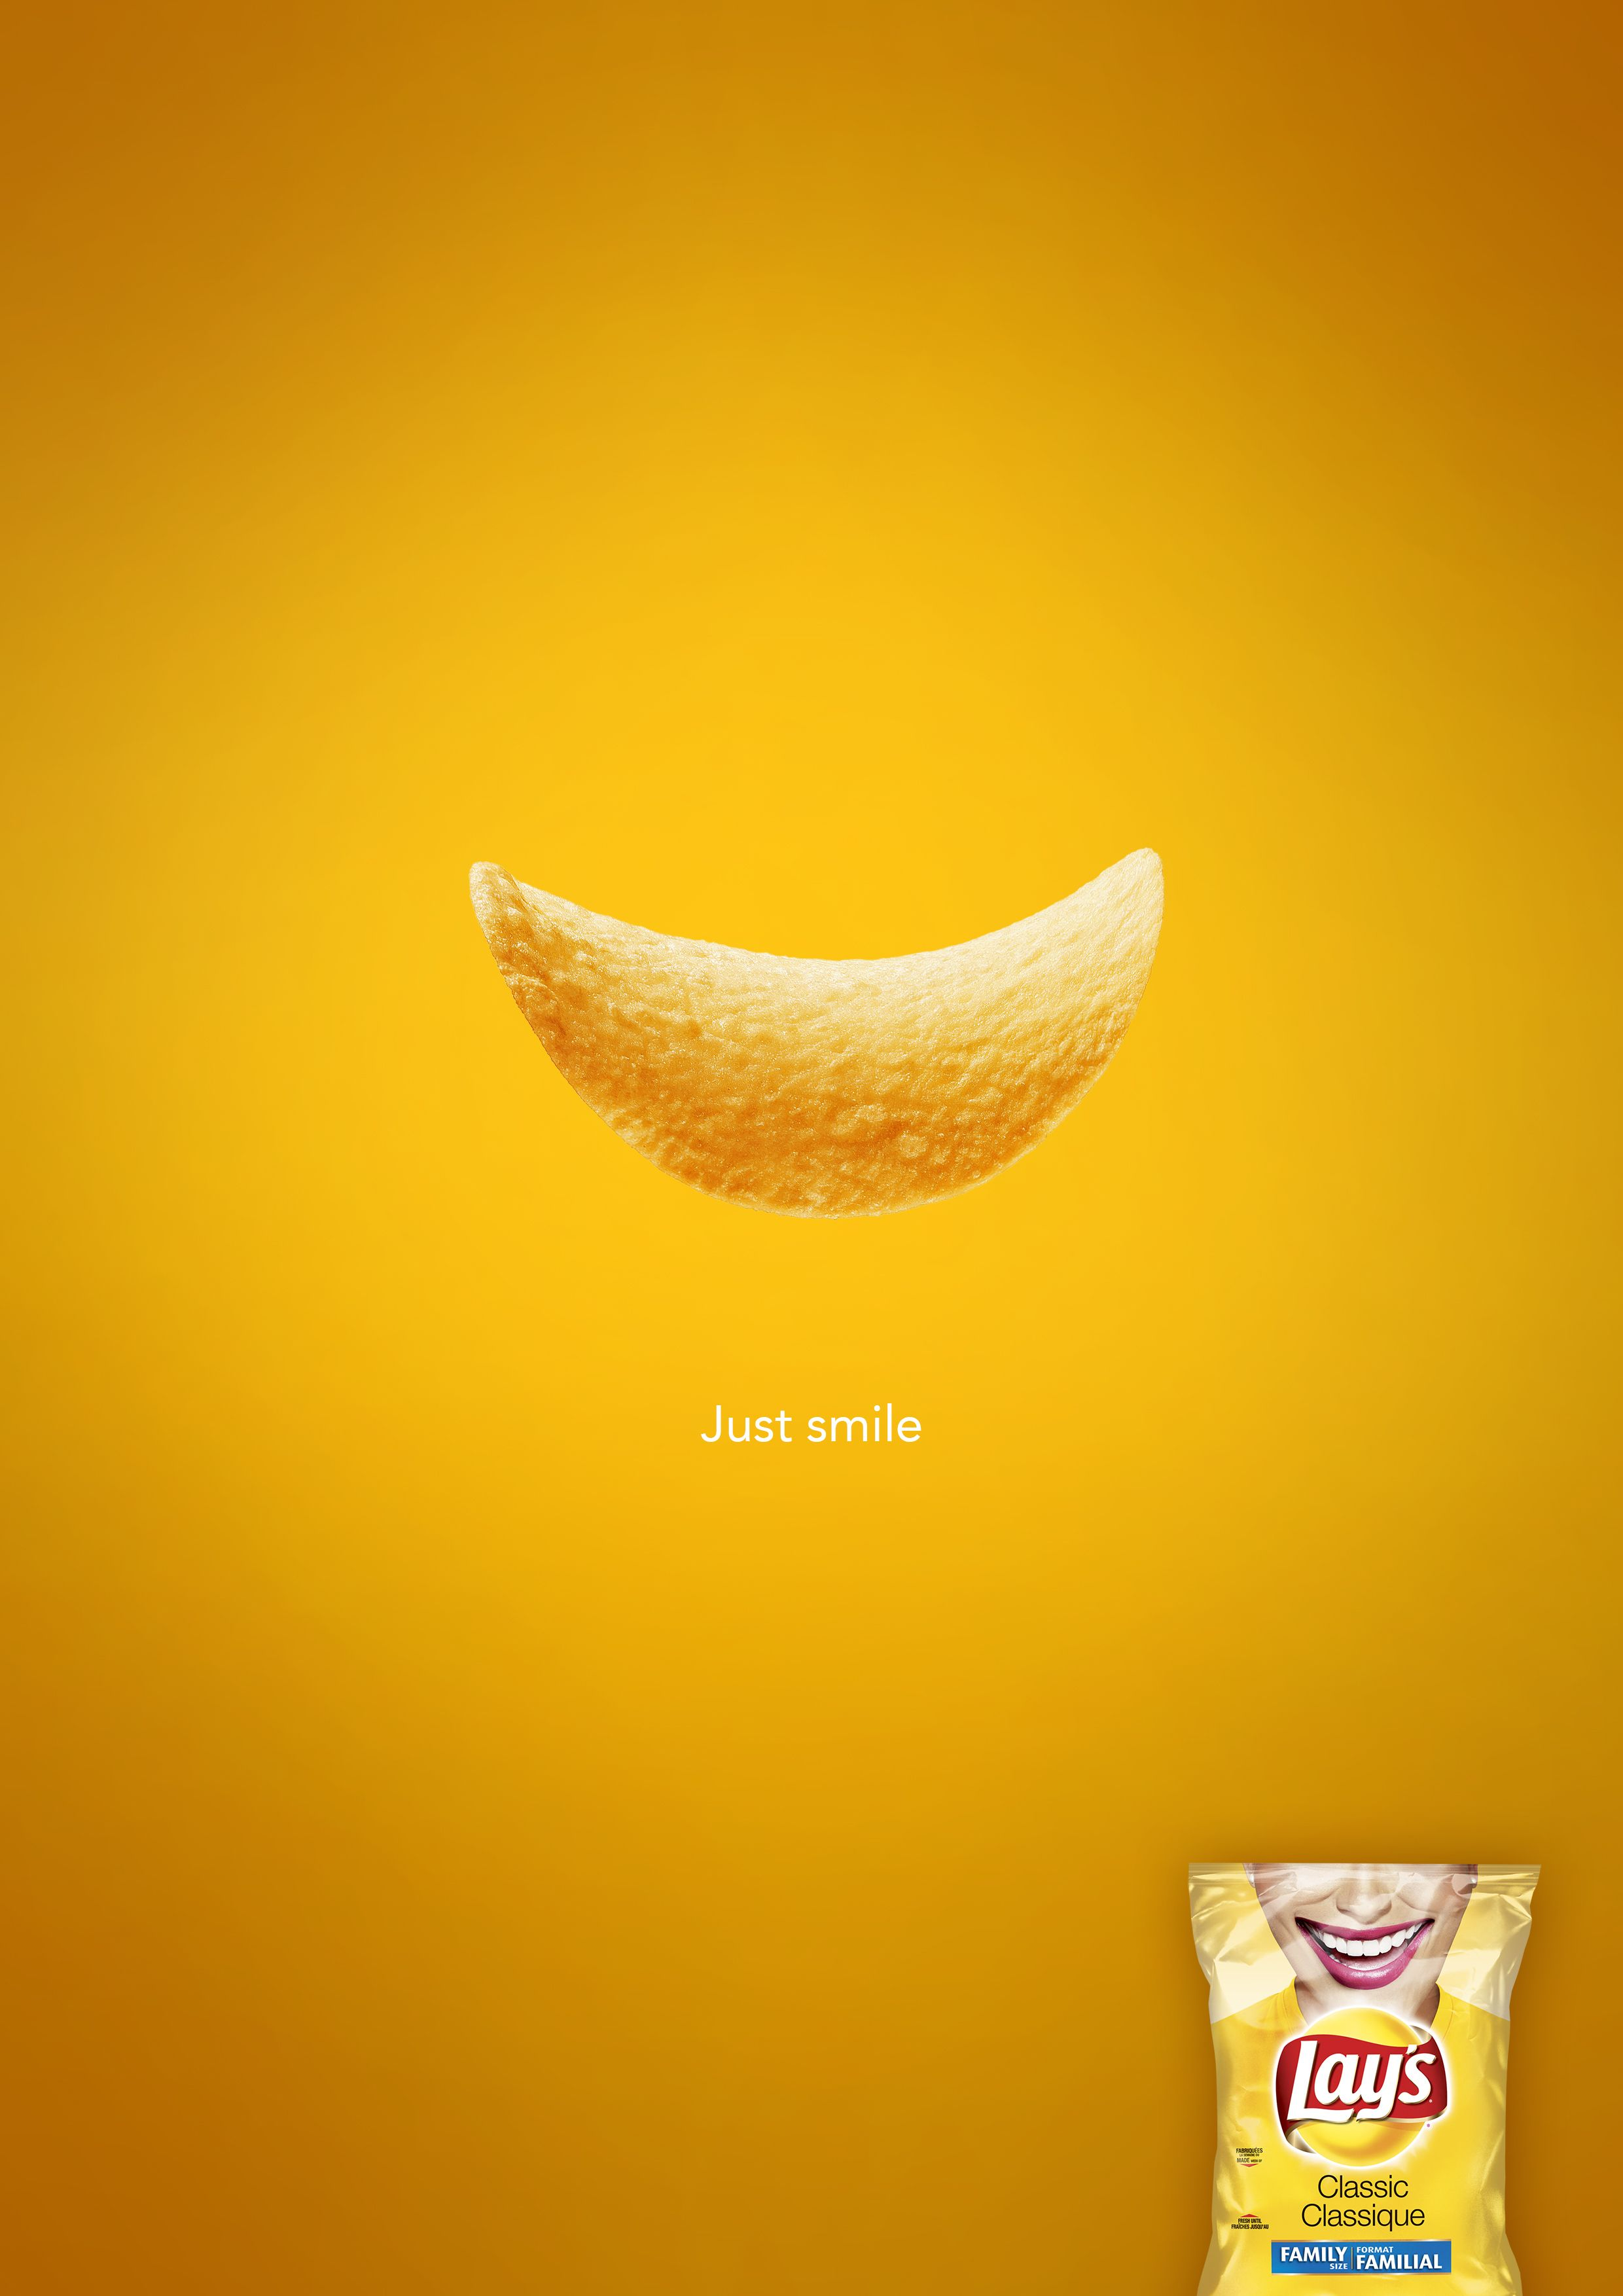 Lays minimalist advertising poster funny   Advertising ...